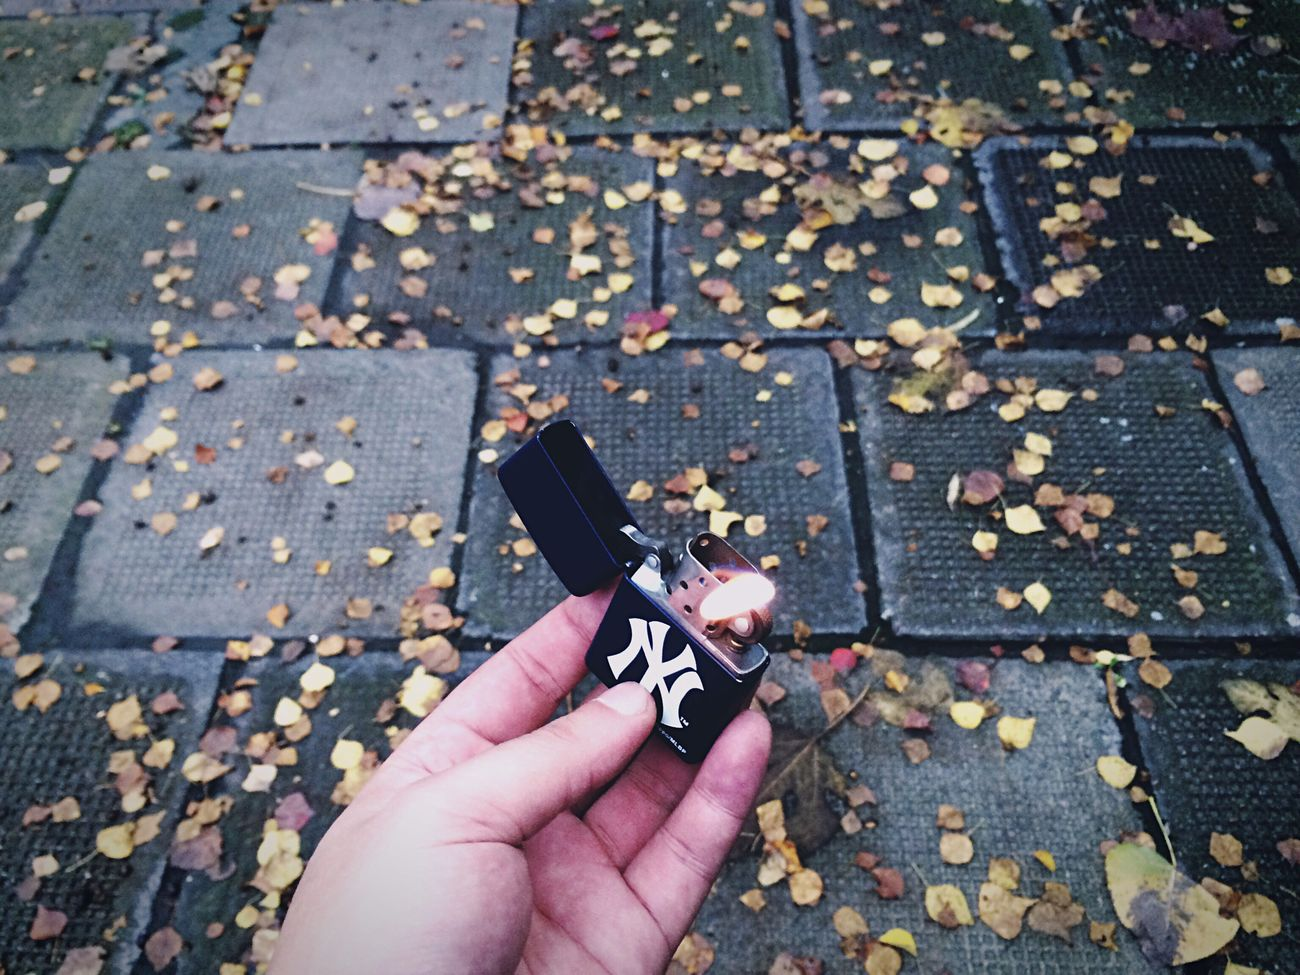 On The Road IPhoneography Leaves Autumn Leaves Fall Leaves Leaf 🍂 City Cityscapes Streetphotography Fire